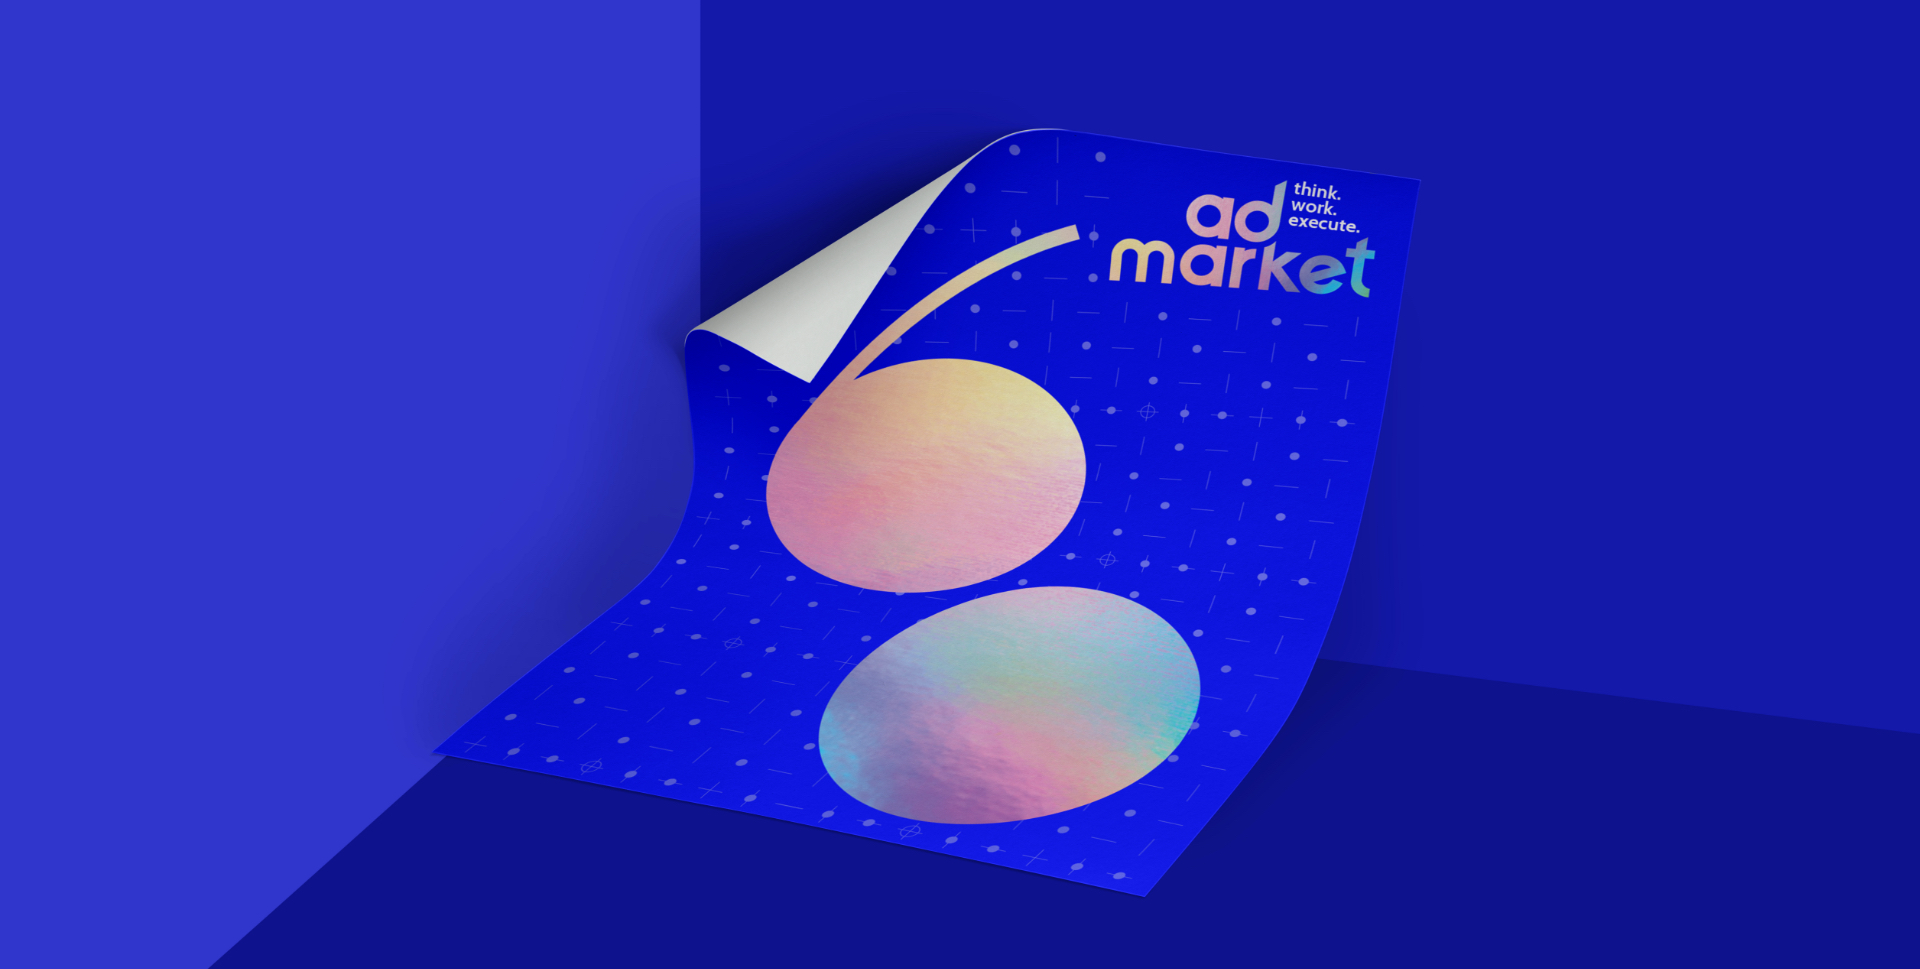 Our Creation - AdMarket